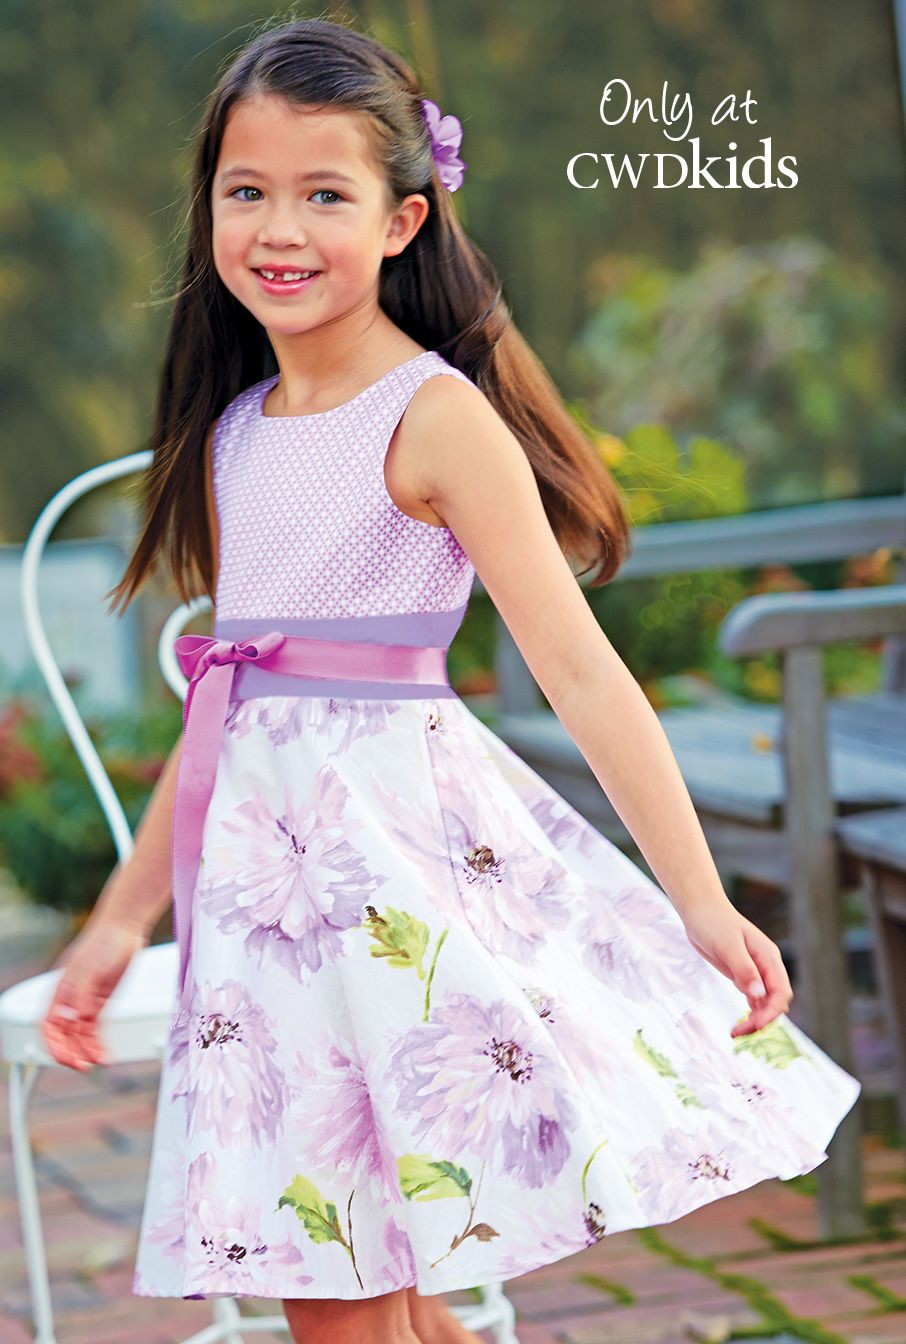 From CWDkids: Mixed Print Floral Dress